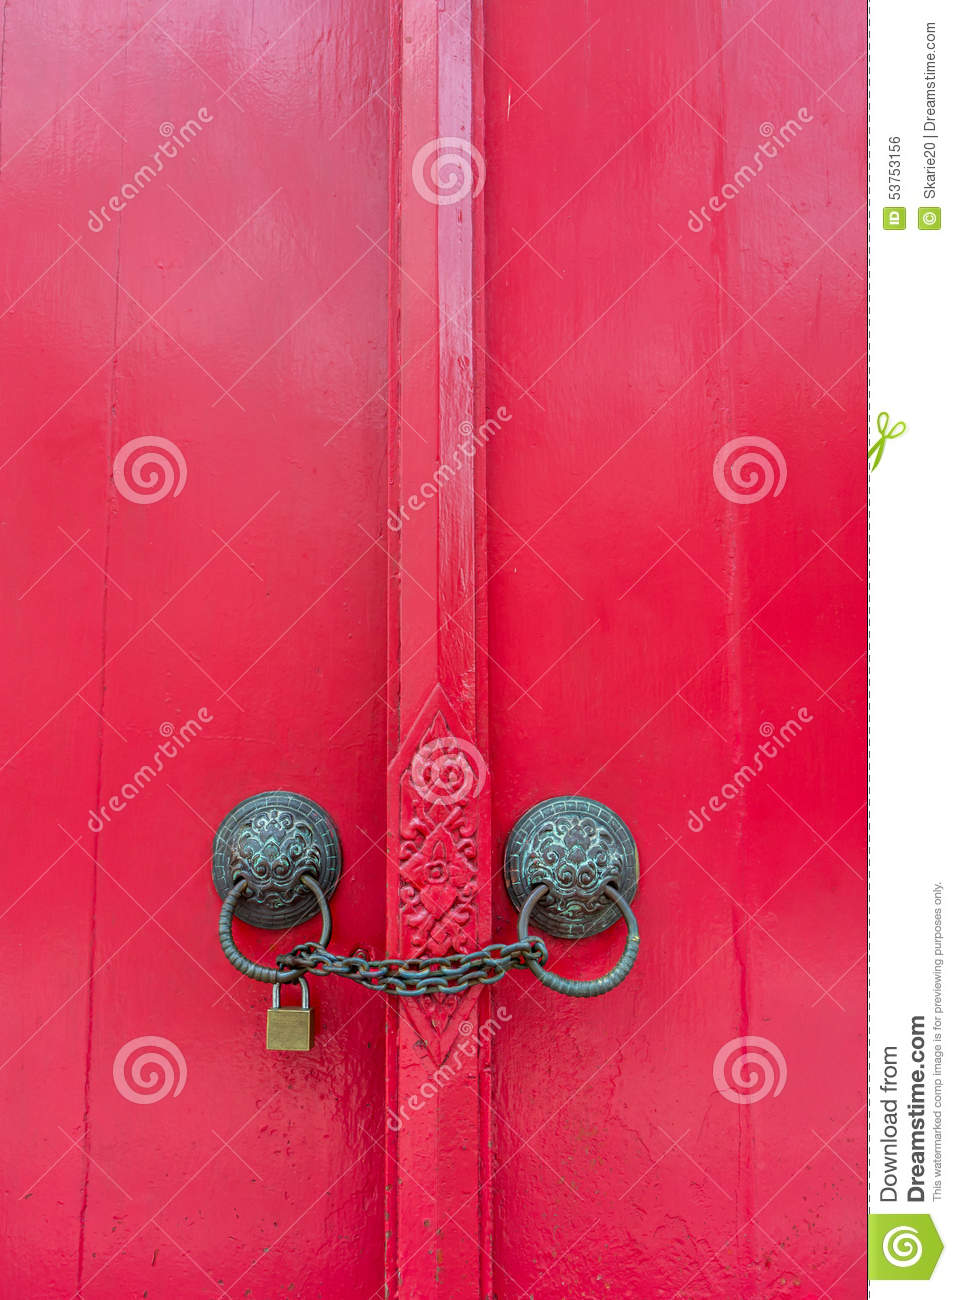 Le Meilleur Chain And Lock Closed Door Locked And Secure Safe Royalty Ce Mois Ci